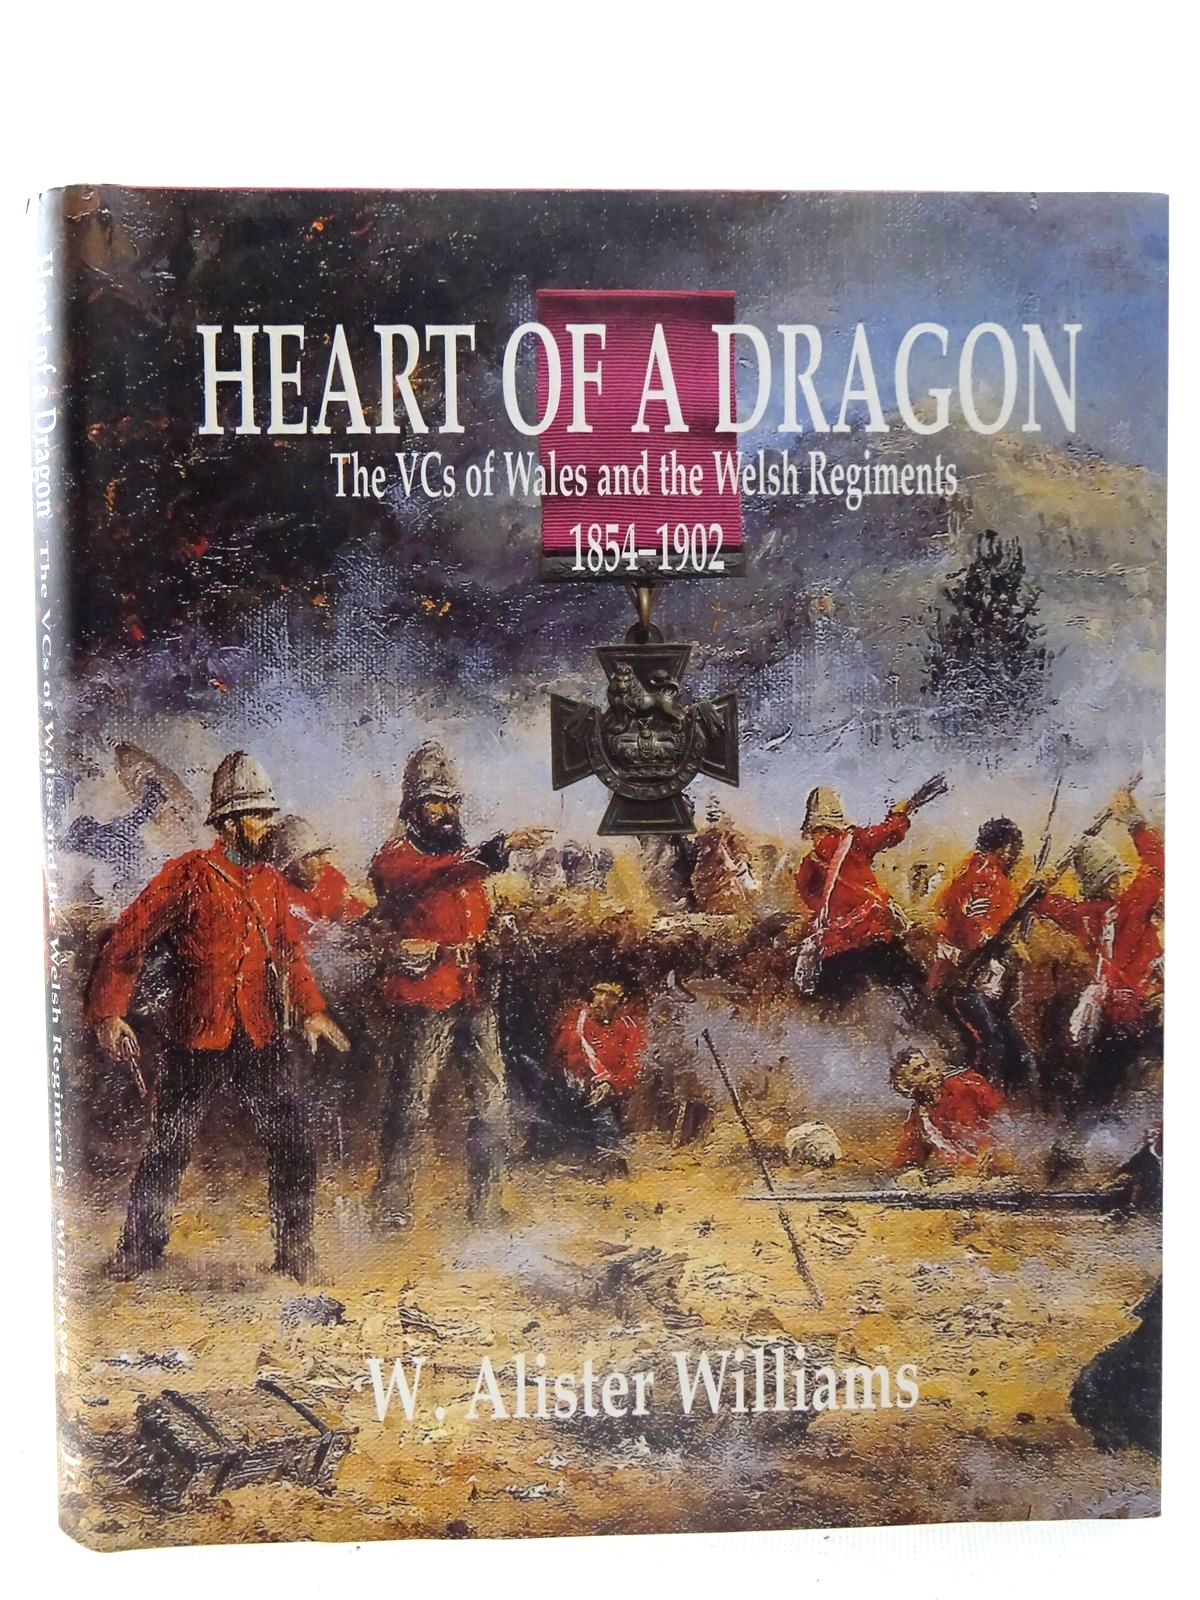 Photo of HEART OF A DRAGON THE VCS OF WALES AND THE WELSH REGIMENTS 1854-1902 written by Williams, W. Alister published by Bridge Books (STOCK CODE: 2126169)  for sale by Stella & Rose's Books